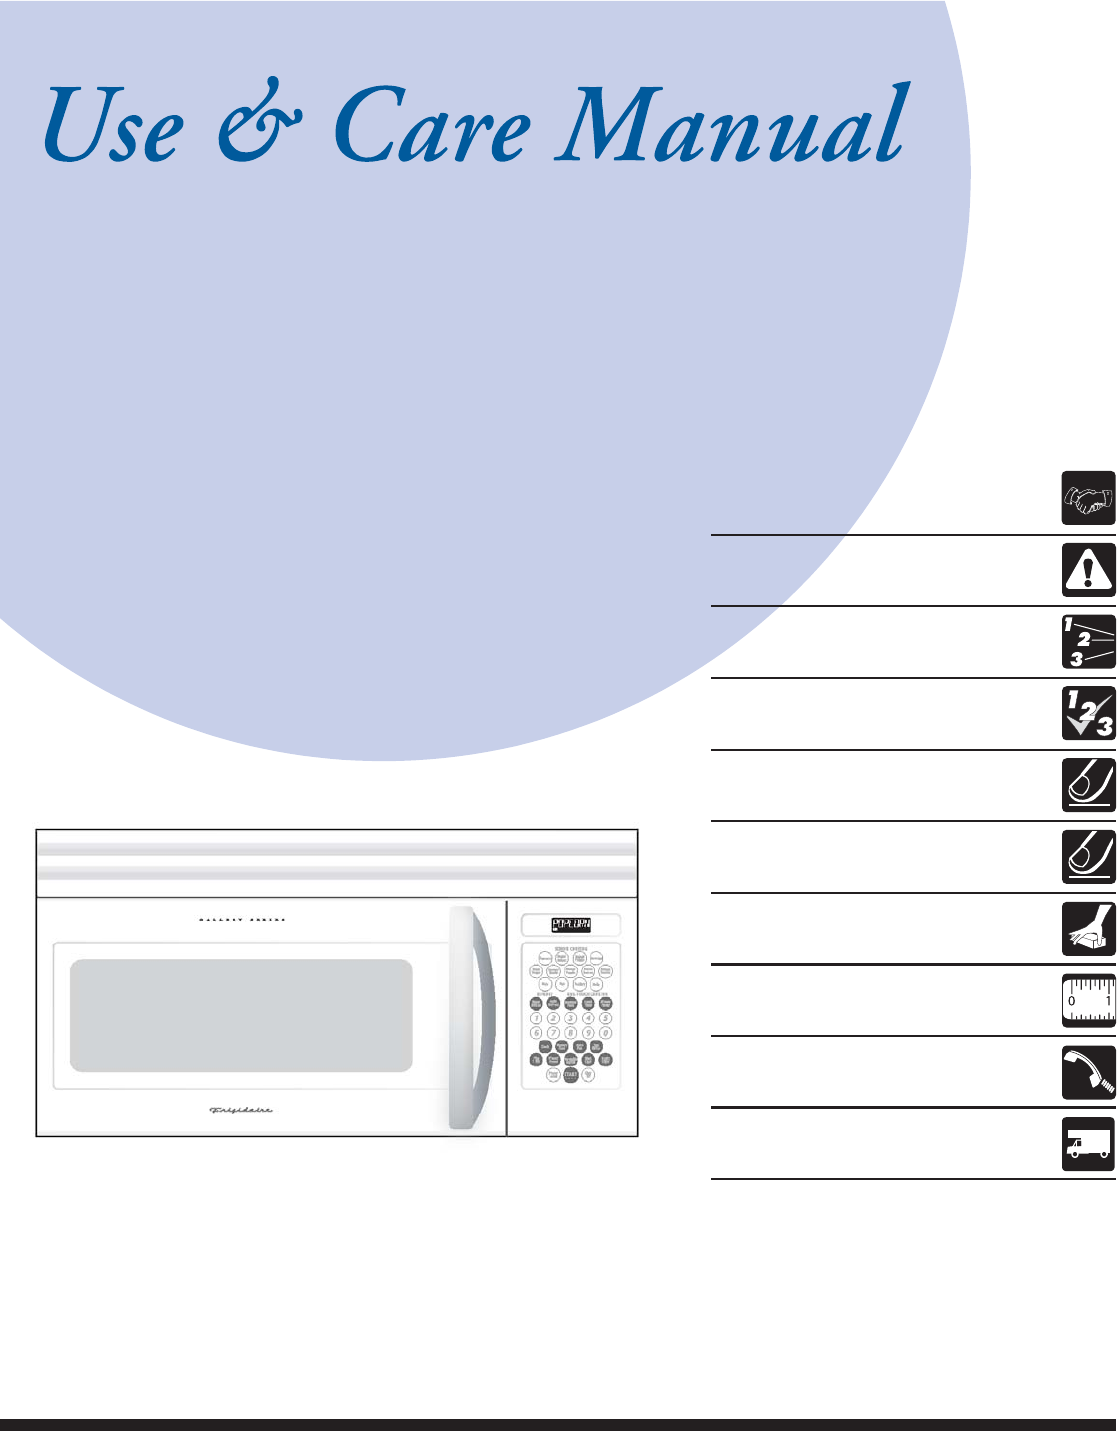 frigidaire over the range microwave manual